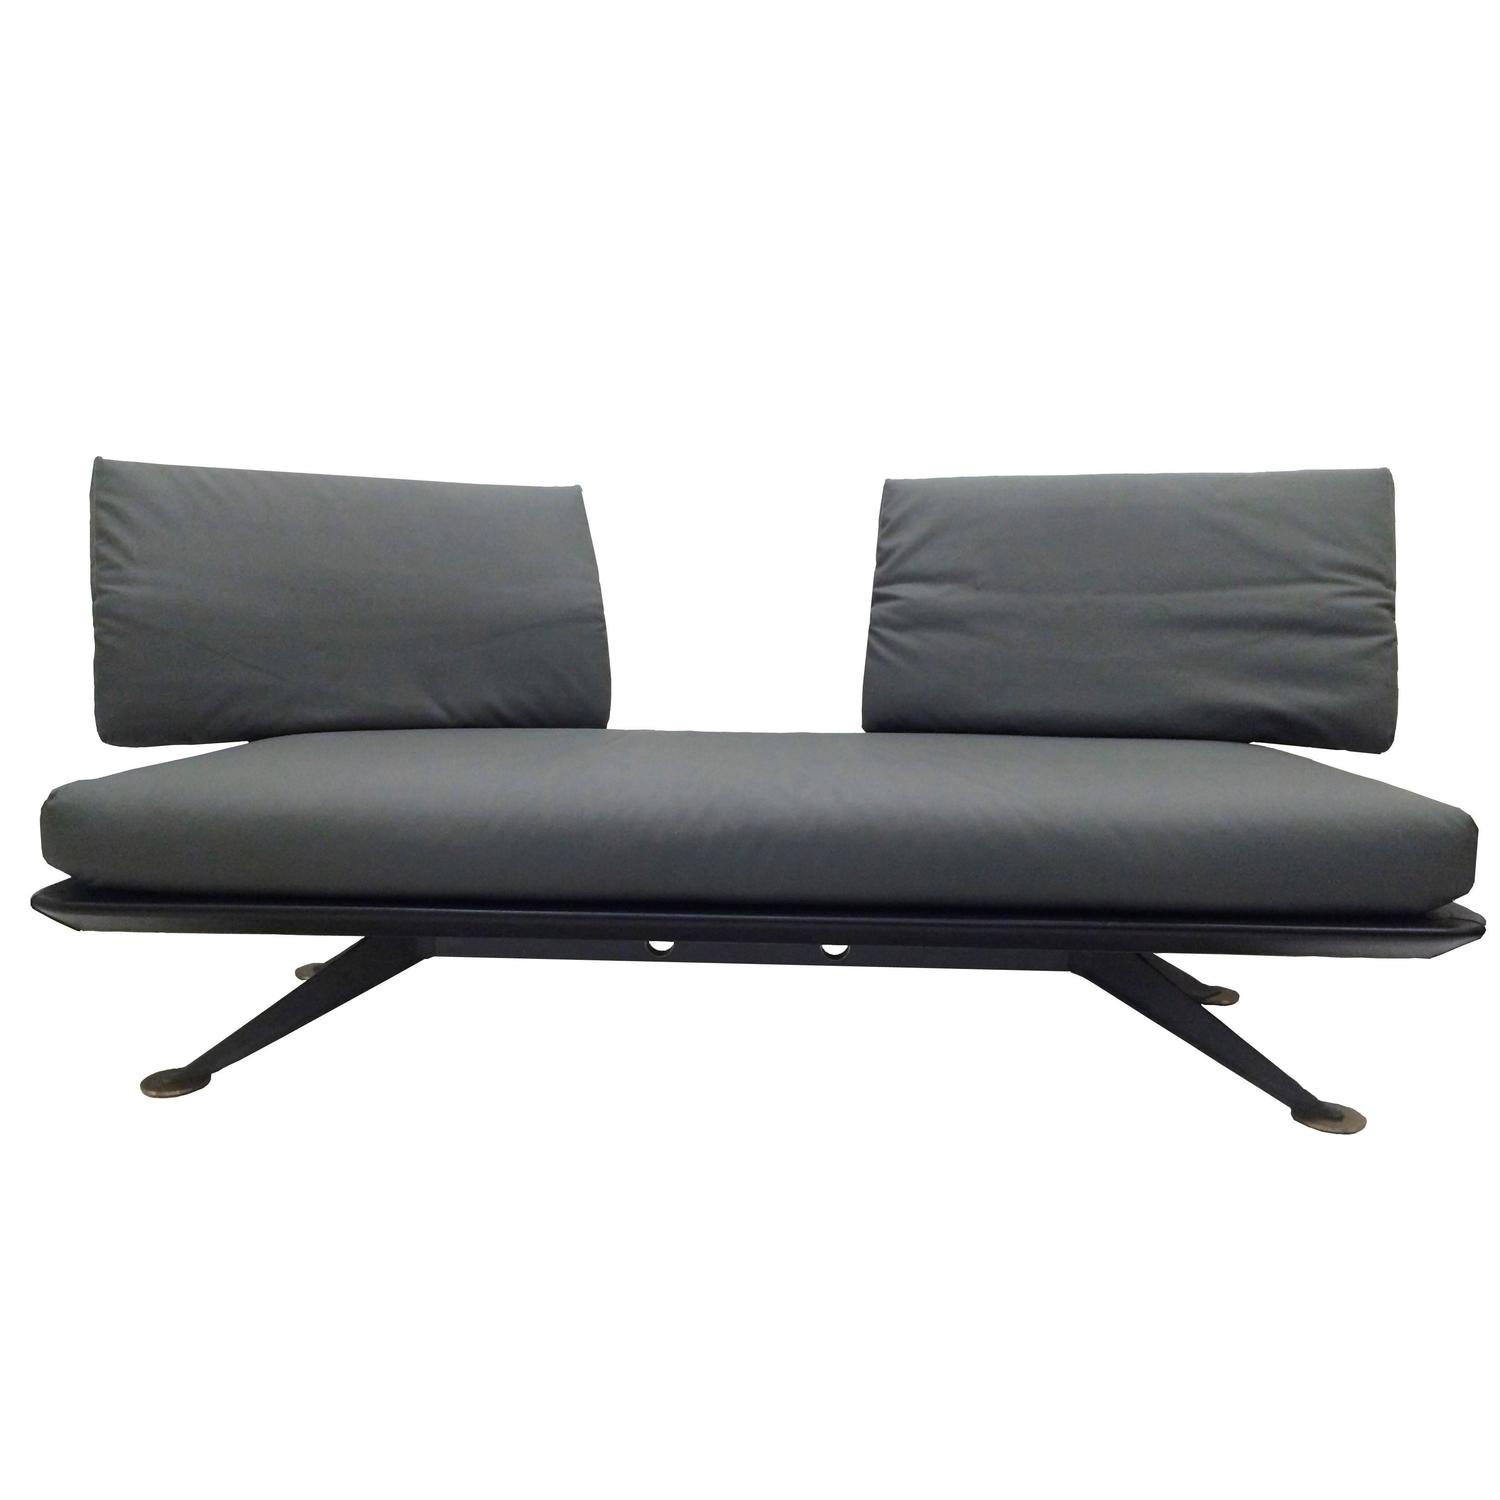 Couch daybed divan adia by paolo piva for b b italia with for Divan daybed